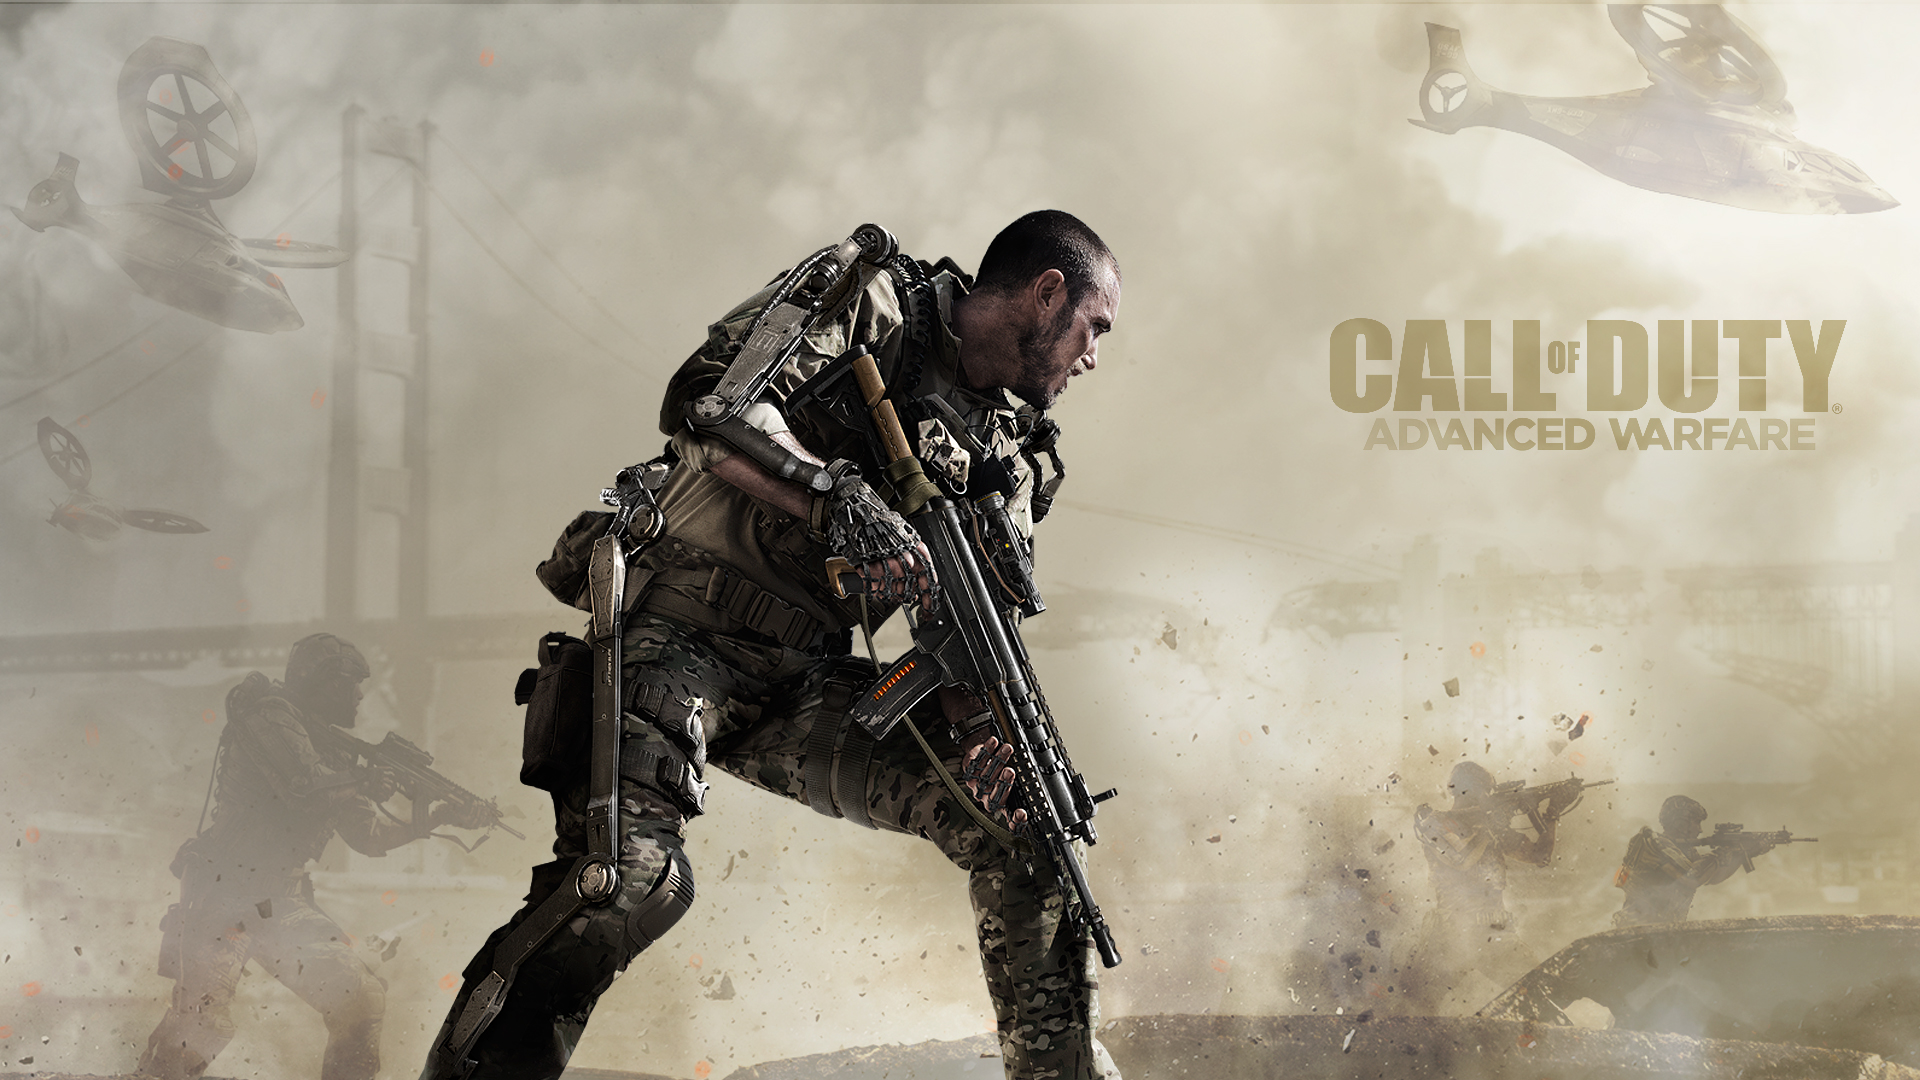 Call of Duty Advanced Warfare Wallpaper FREE Download - Unofficial